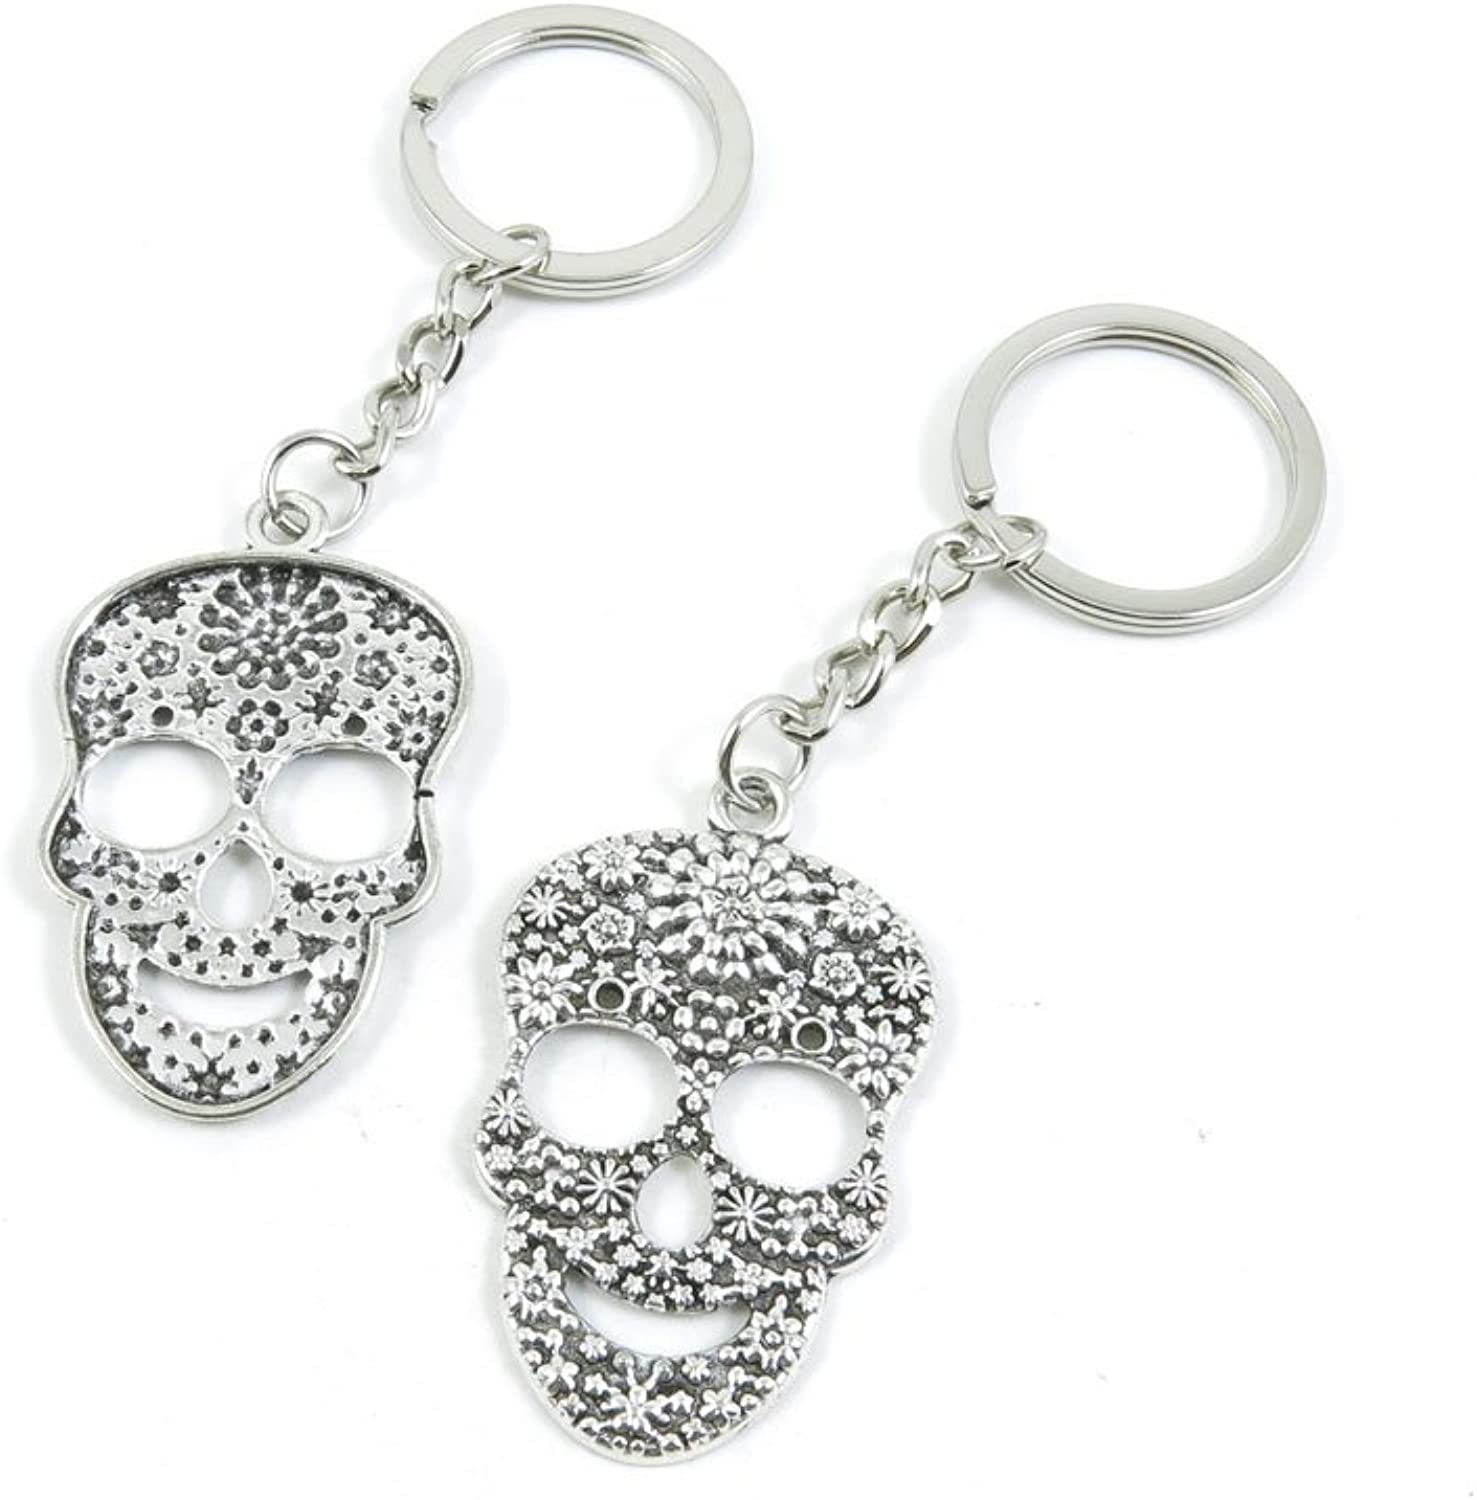 100 Pieces Keychain Keyring Door Car Key Chain Ring Tag Charms Bulk Supply Jewelry Making Clasp Findings O7WV2T Flower Skull Head